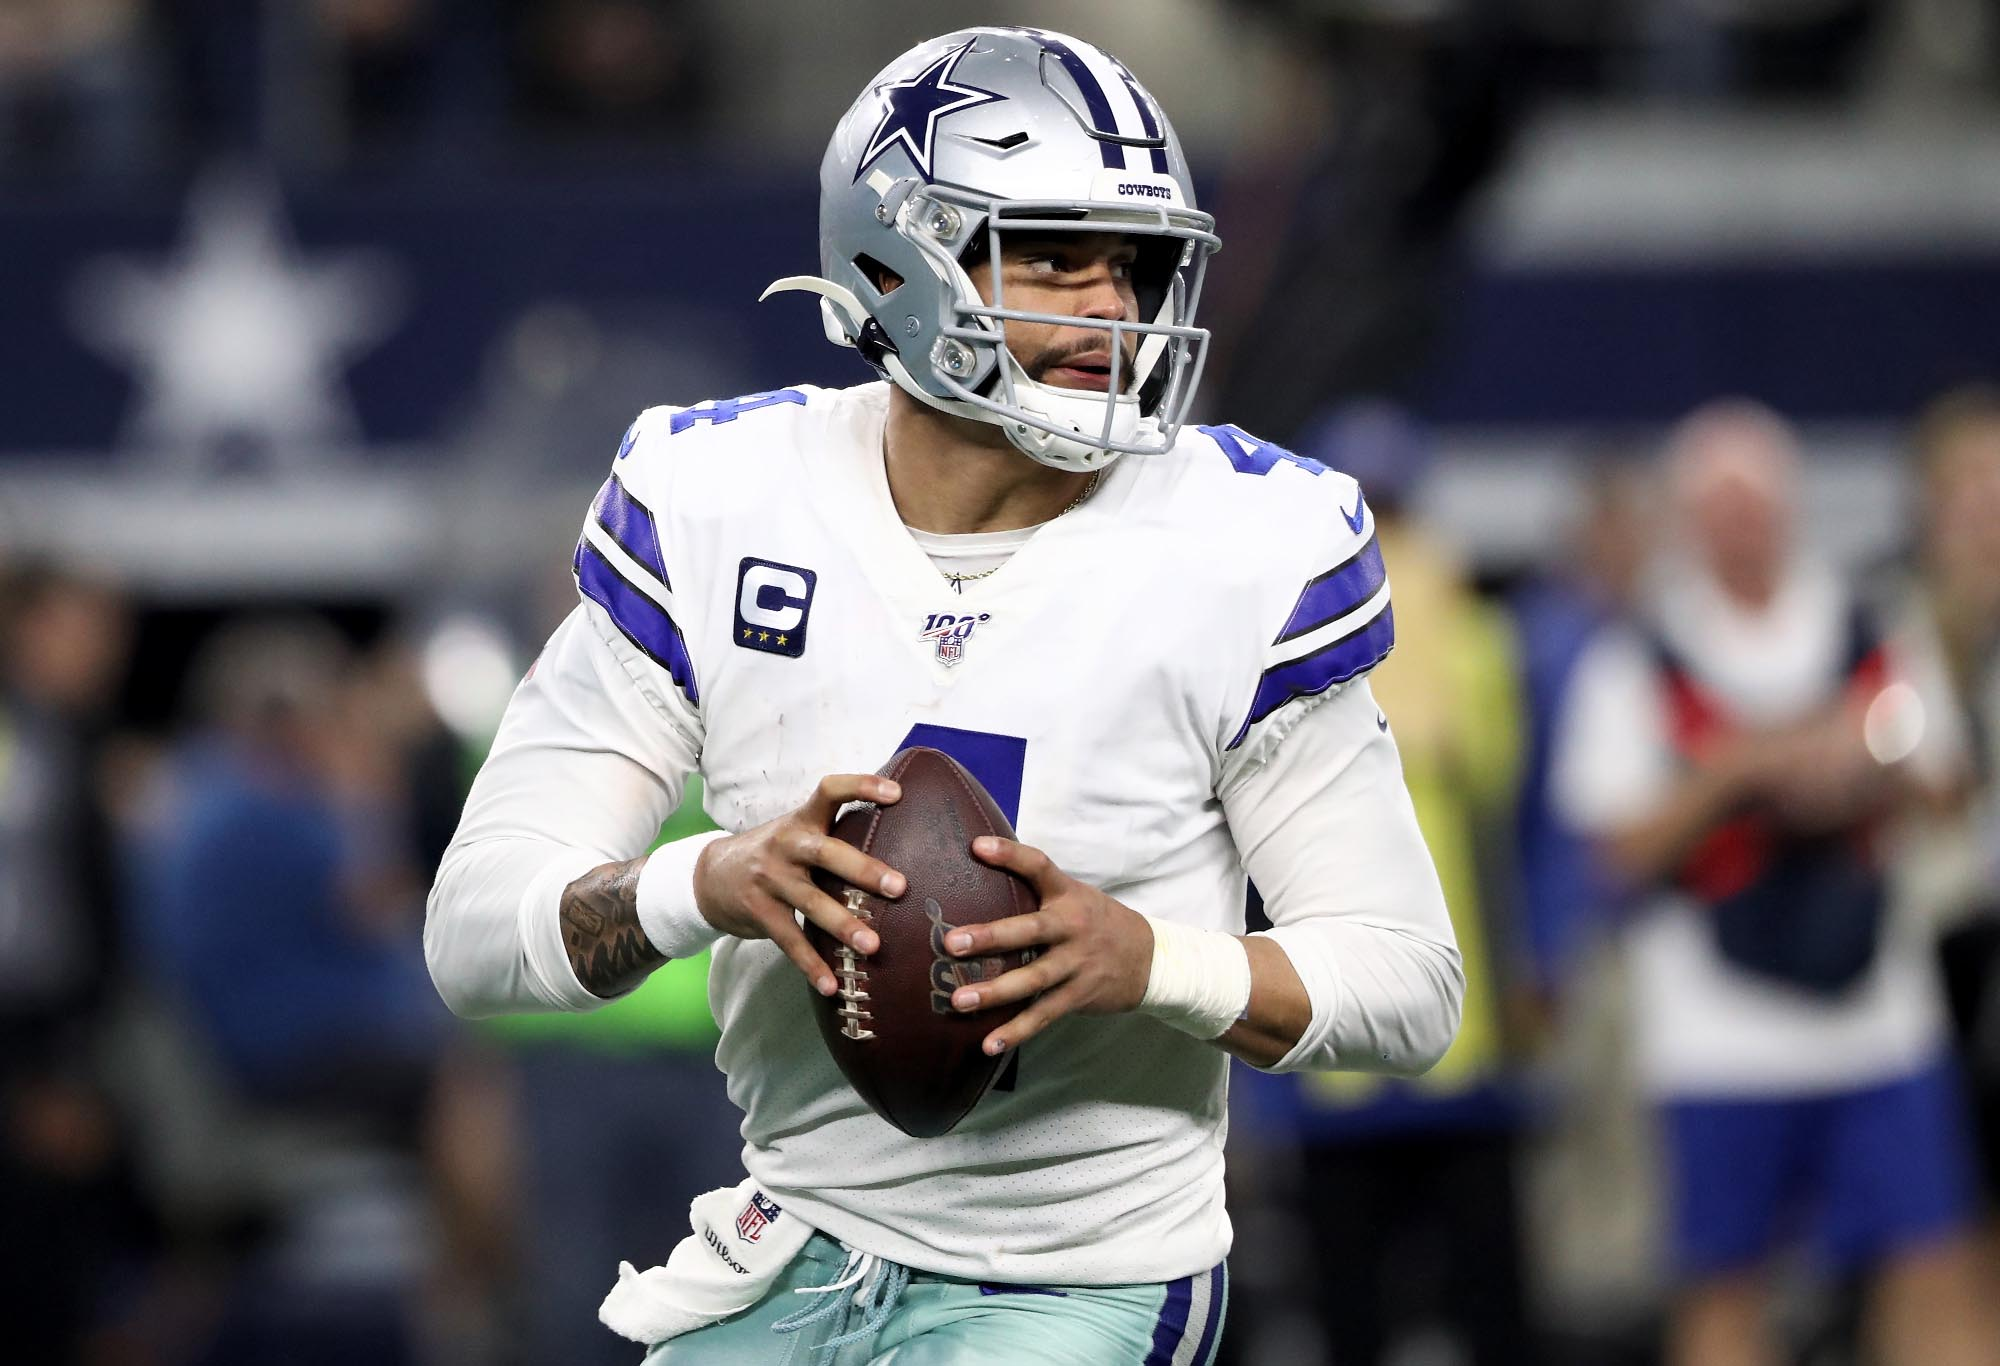 Dak Prescott runs with the ball